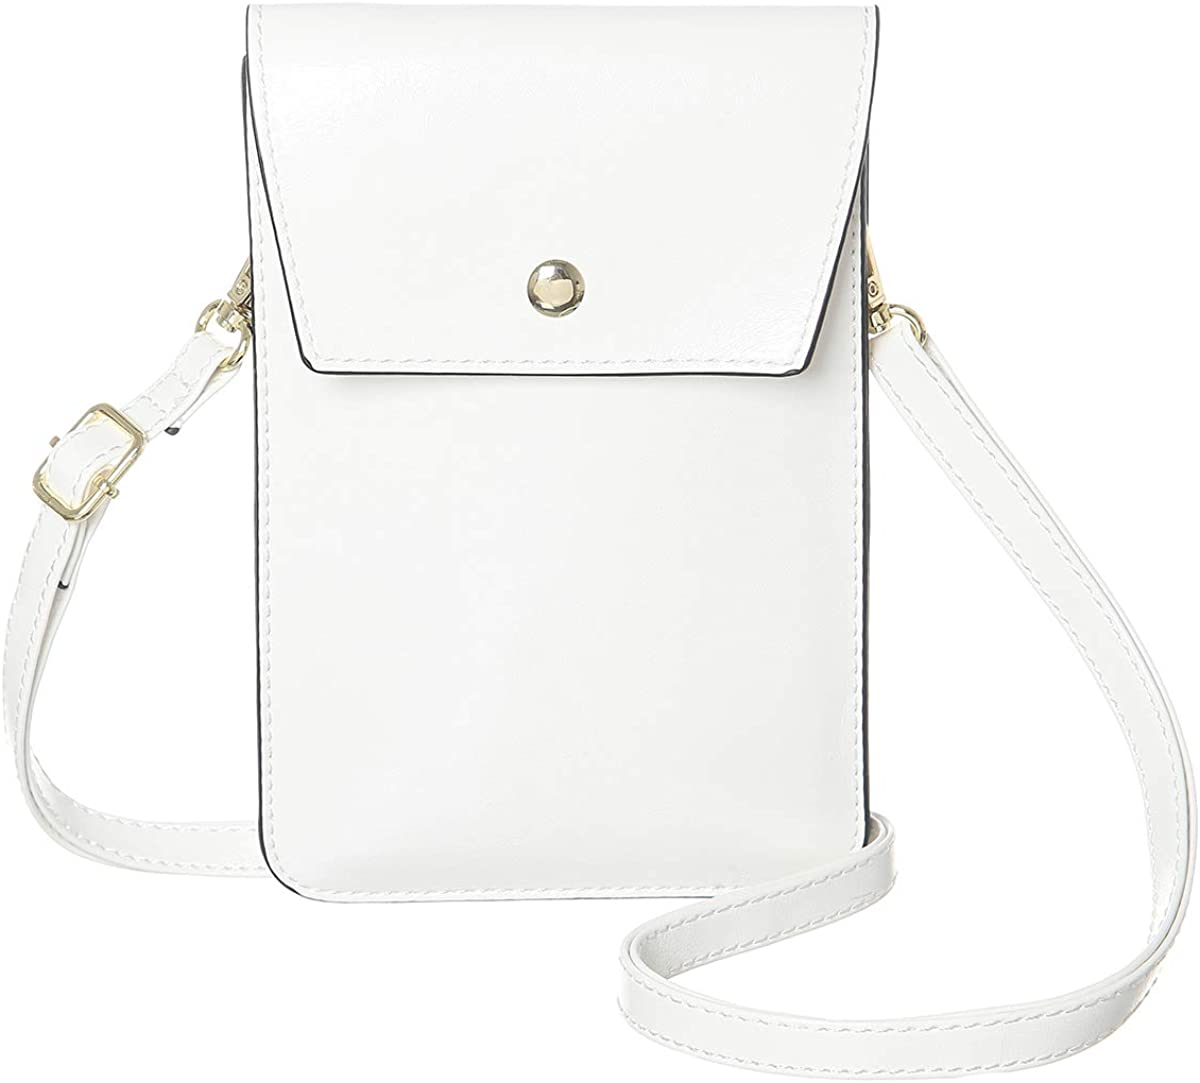 Details about  /Women Mini Cross-body Touch Screen Phone Wallet Shoulder Bag Leather Pouch Case